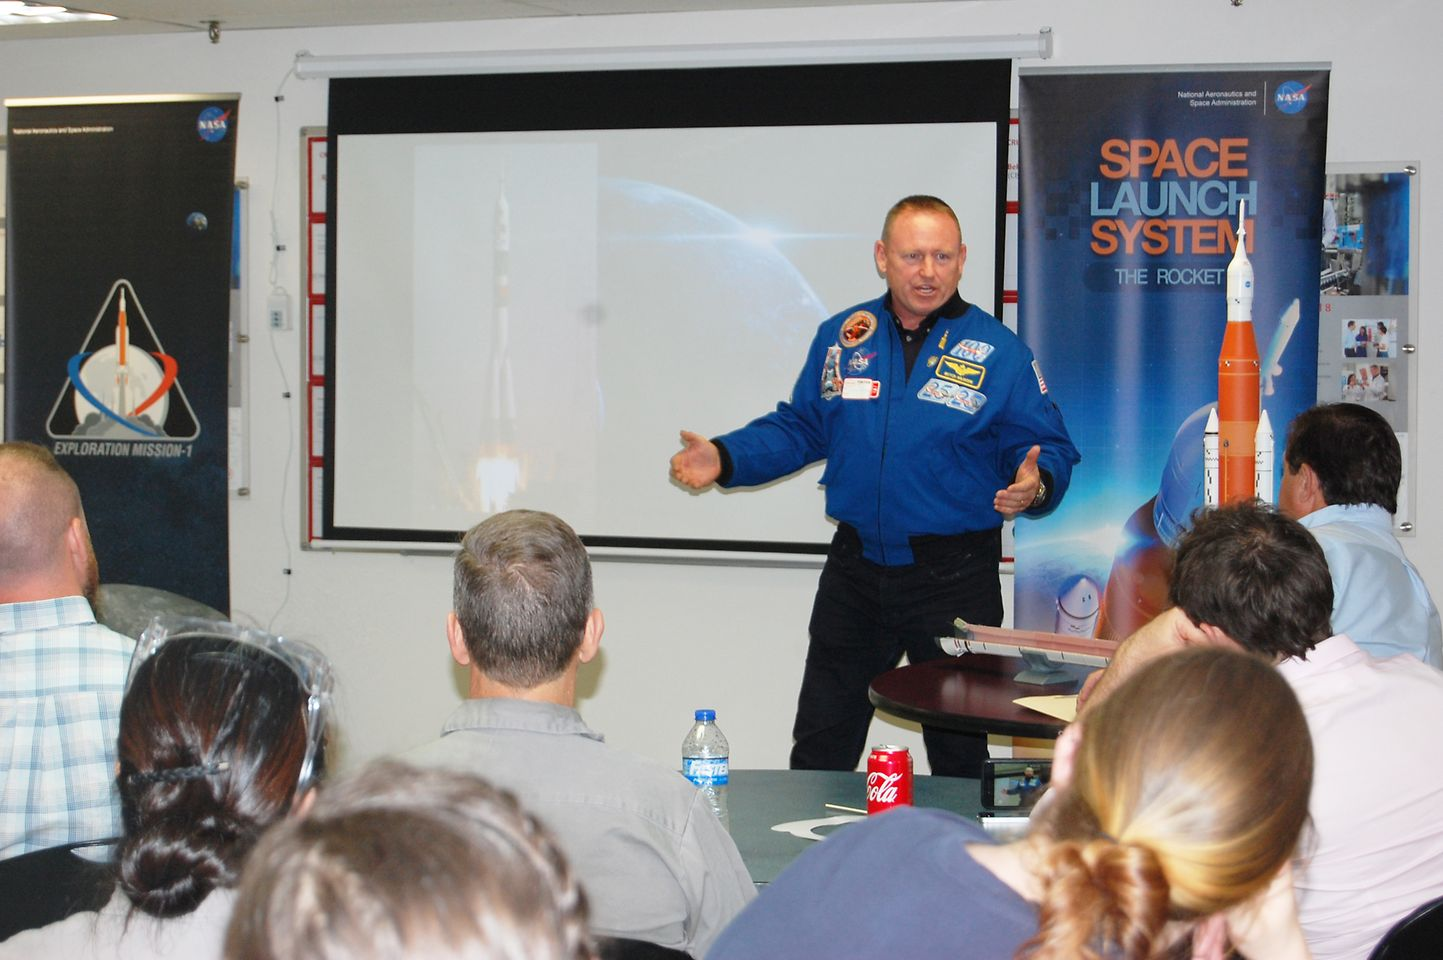 Astronaut Butch Wilmore shares his experiences in space with Seabrook employees.